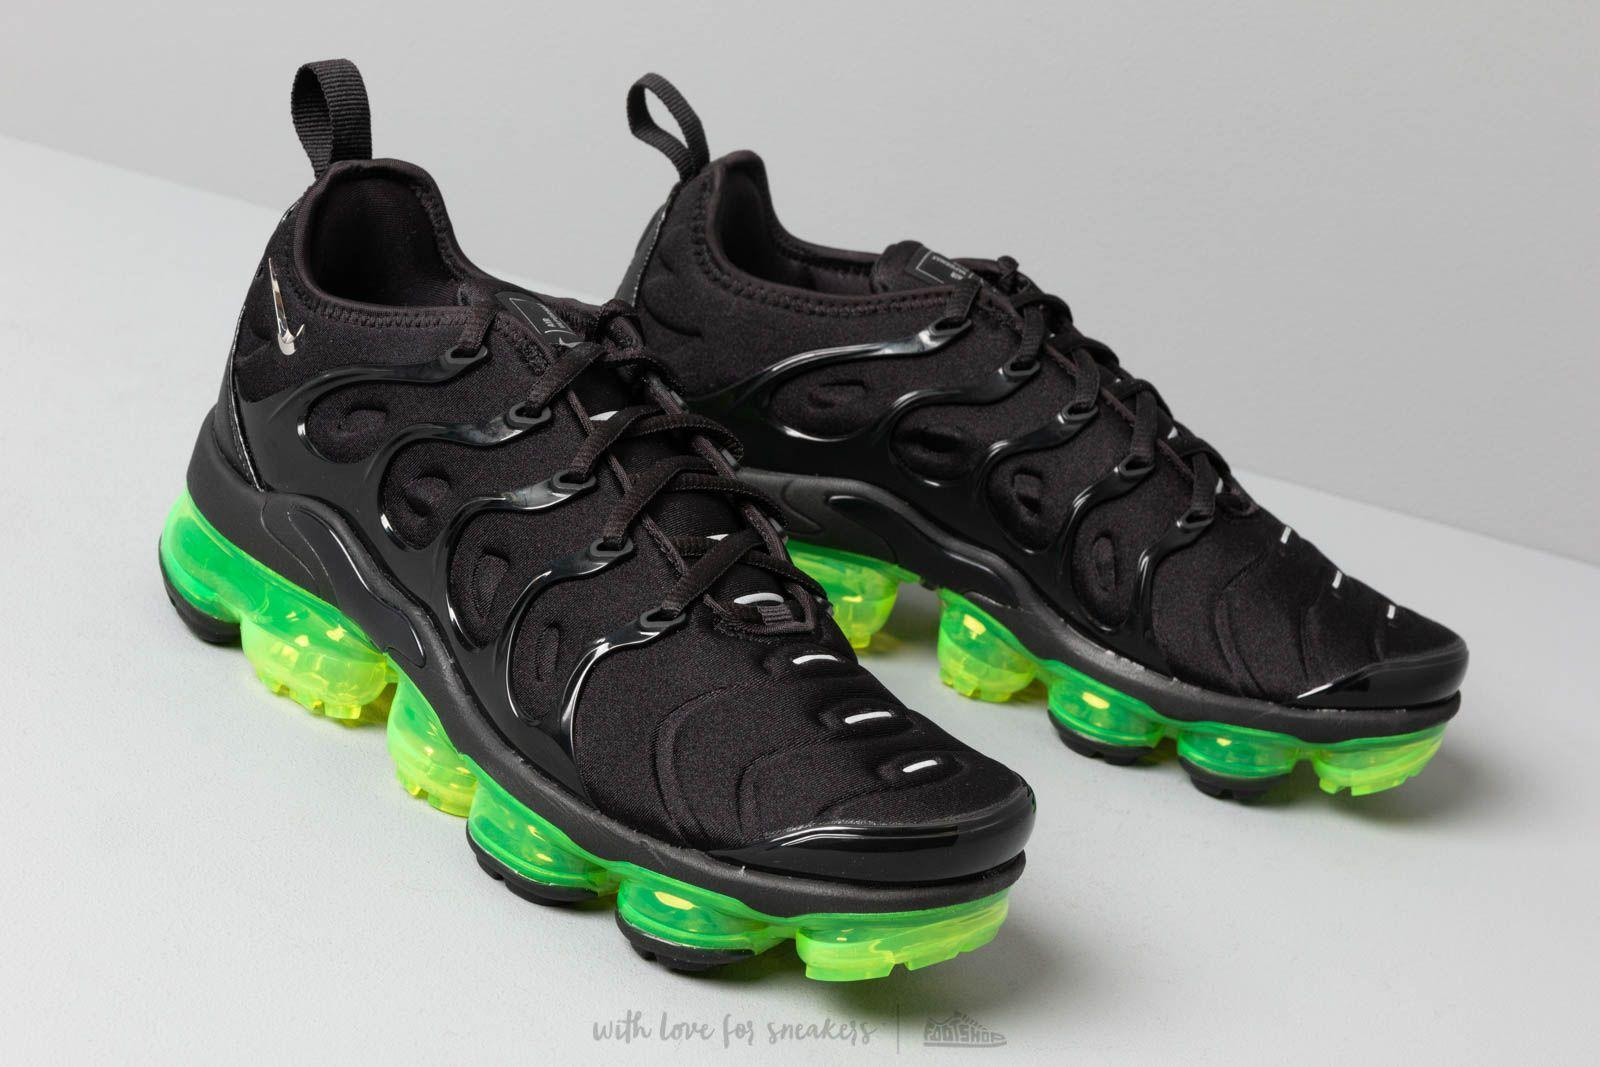 new style a9e77 b6b18 Lyst - Nike Air Vapormax Plus Black  Reflect Silver-volt for Men